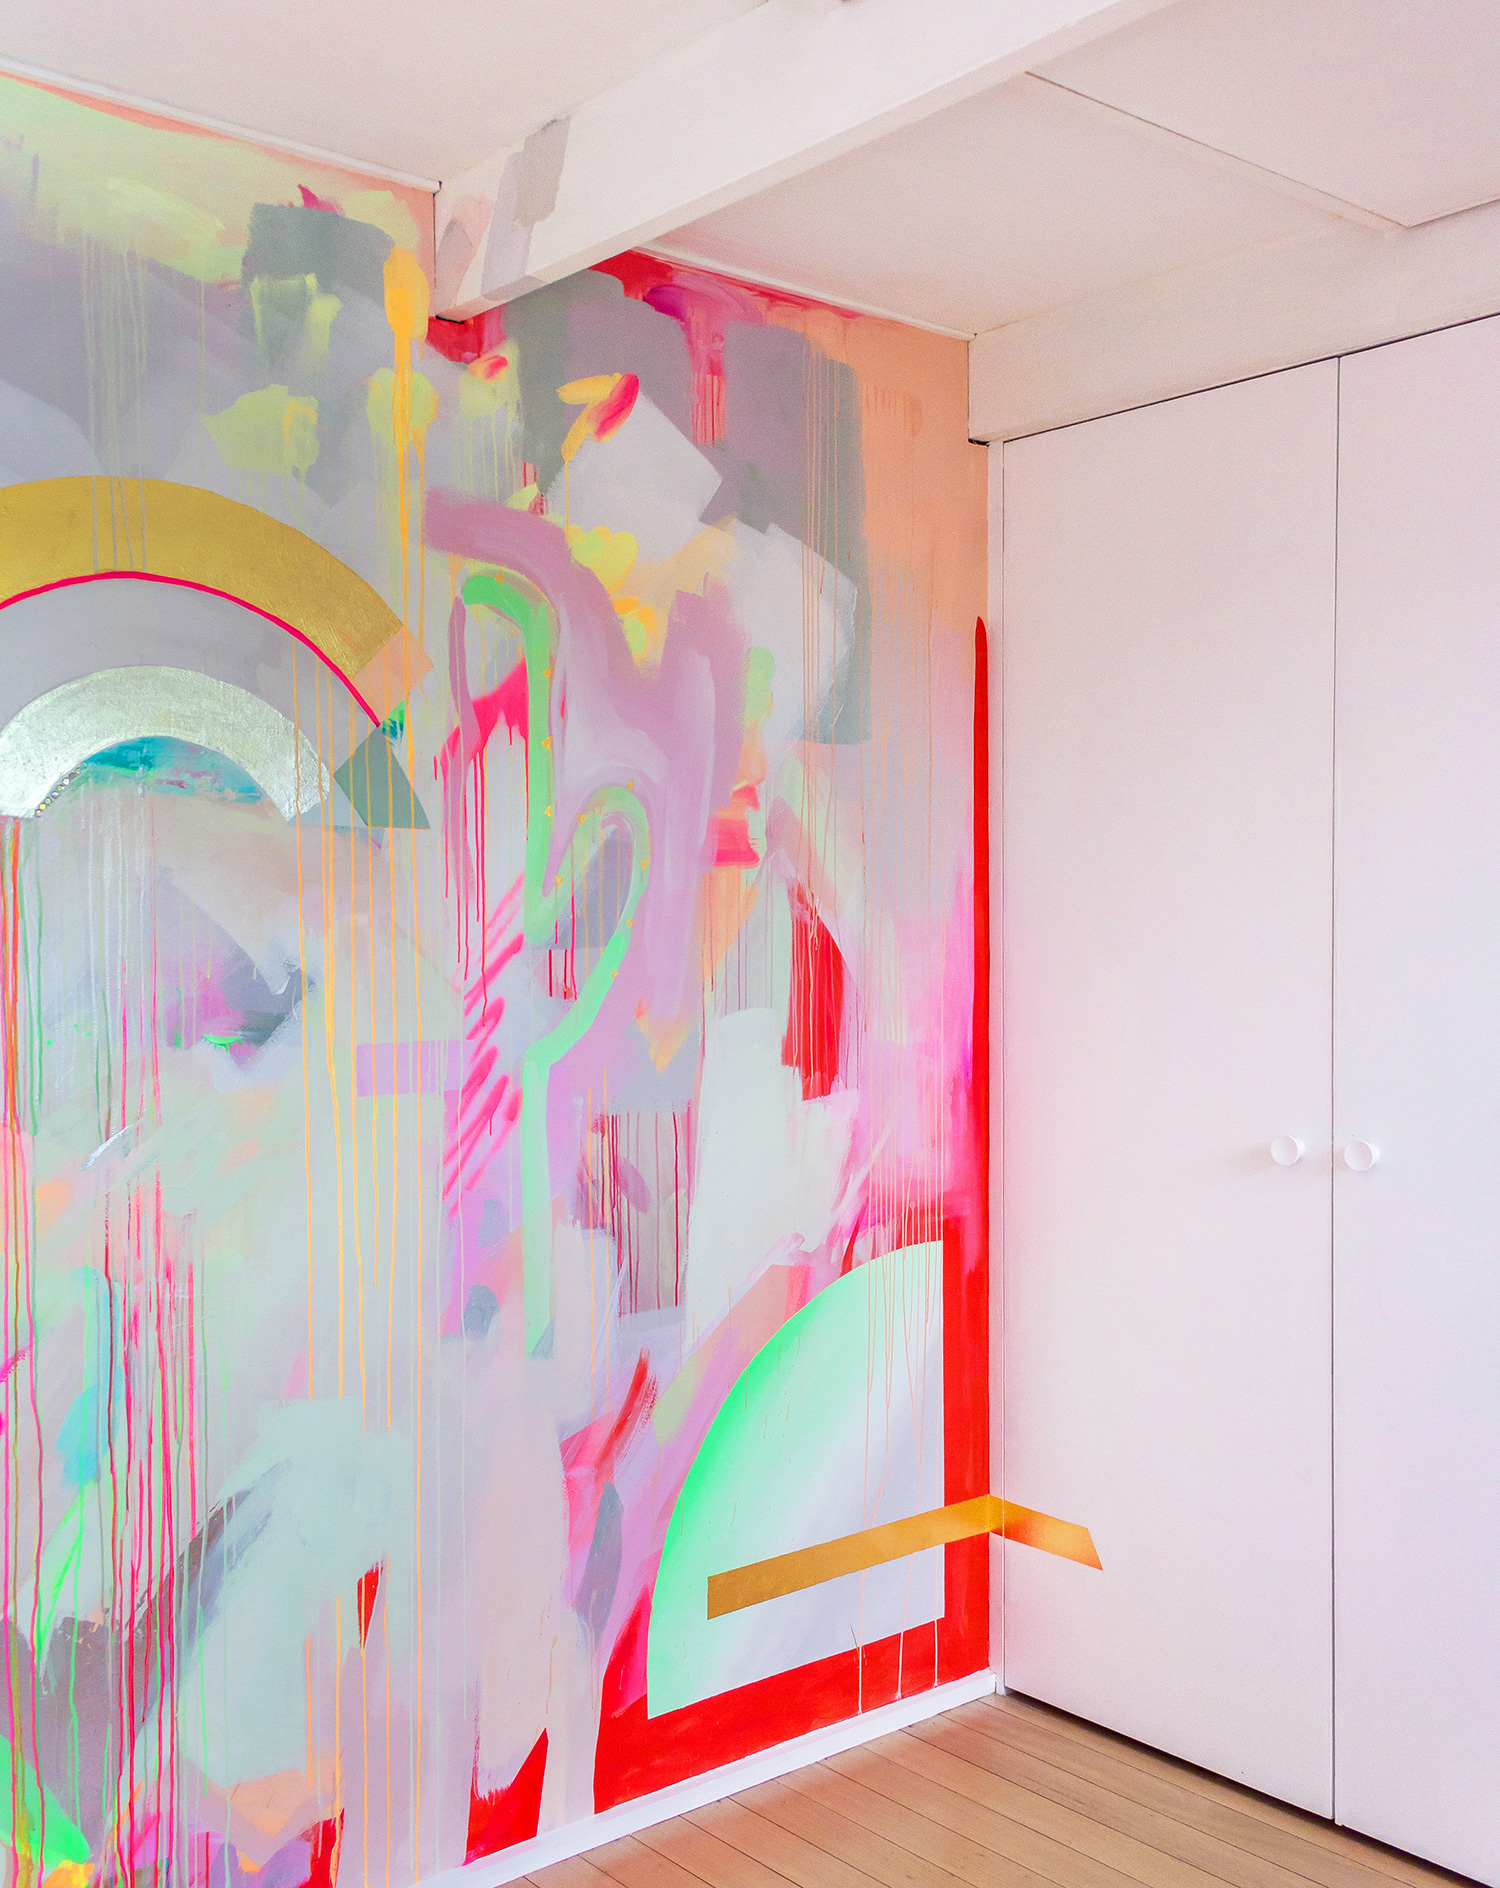 Vibrant wall mural in bright neon colours, features a spray painted cactus, gold leaf accents and metallic rainbow.